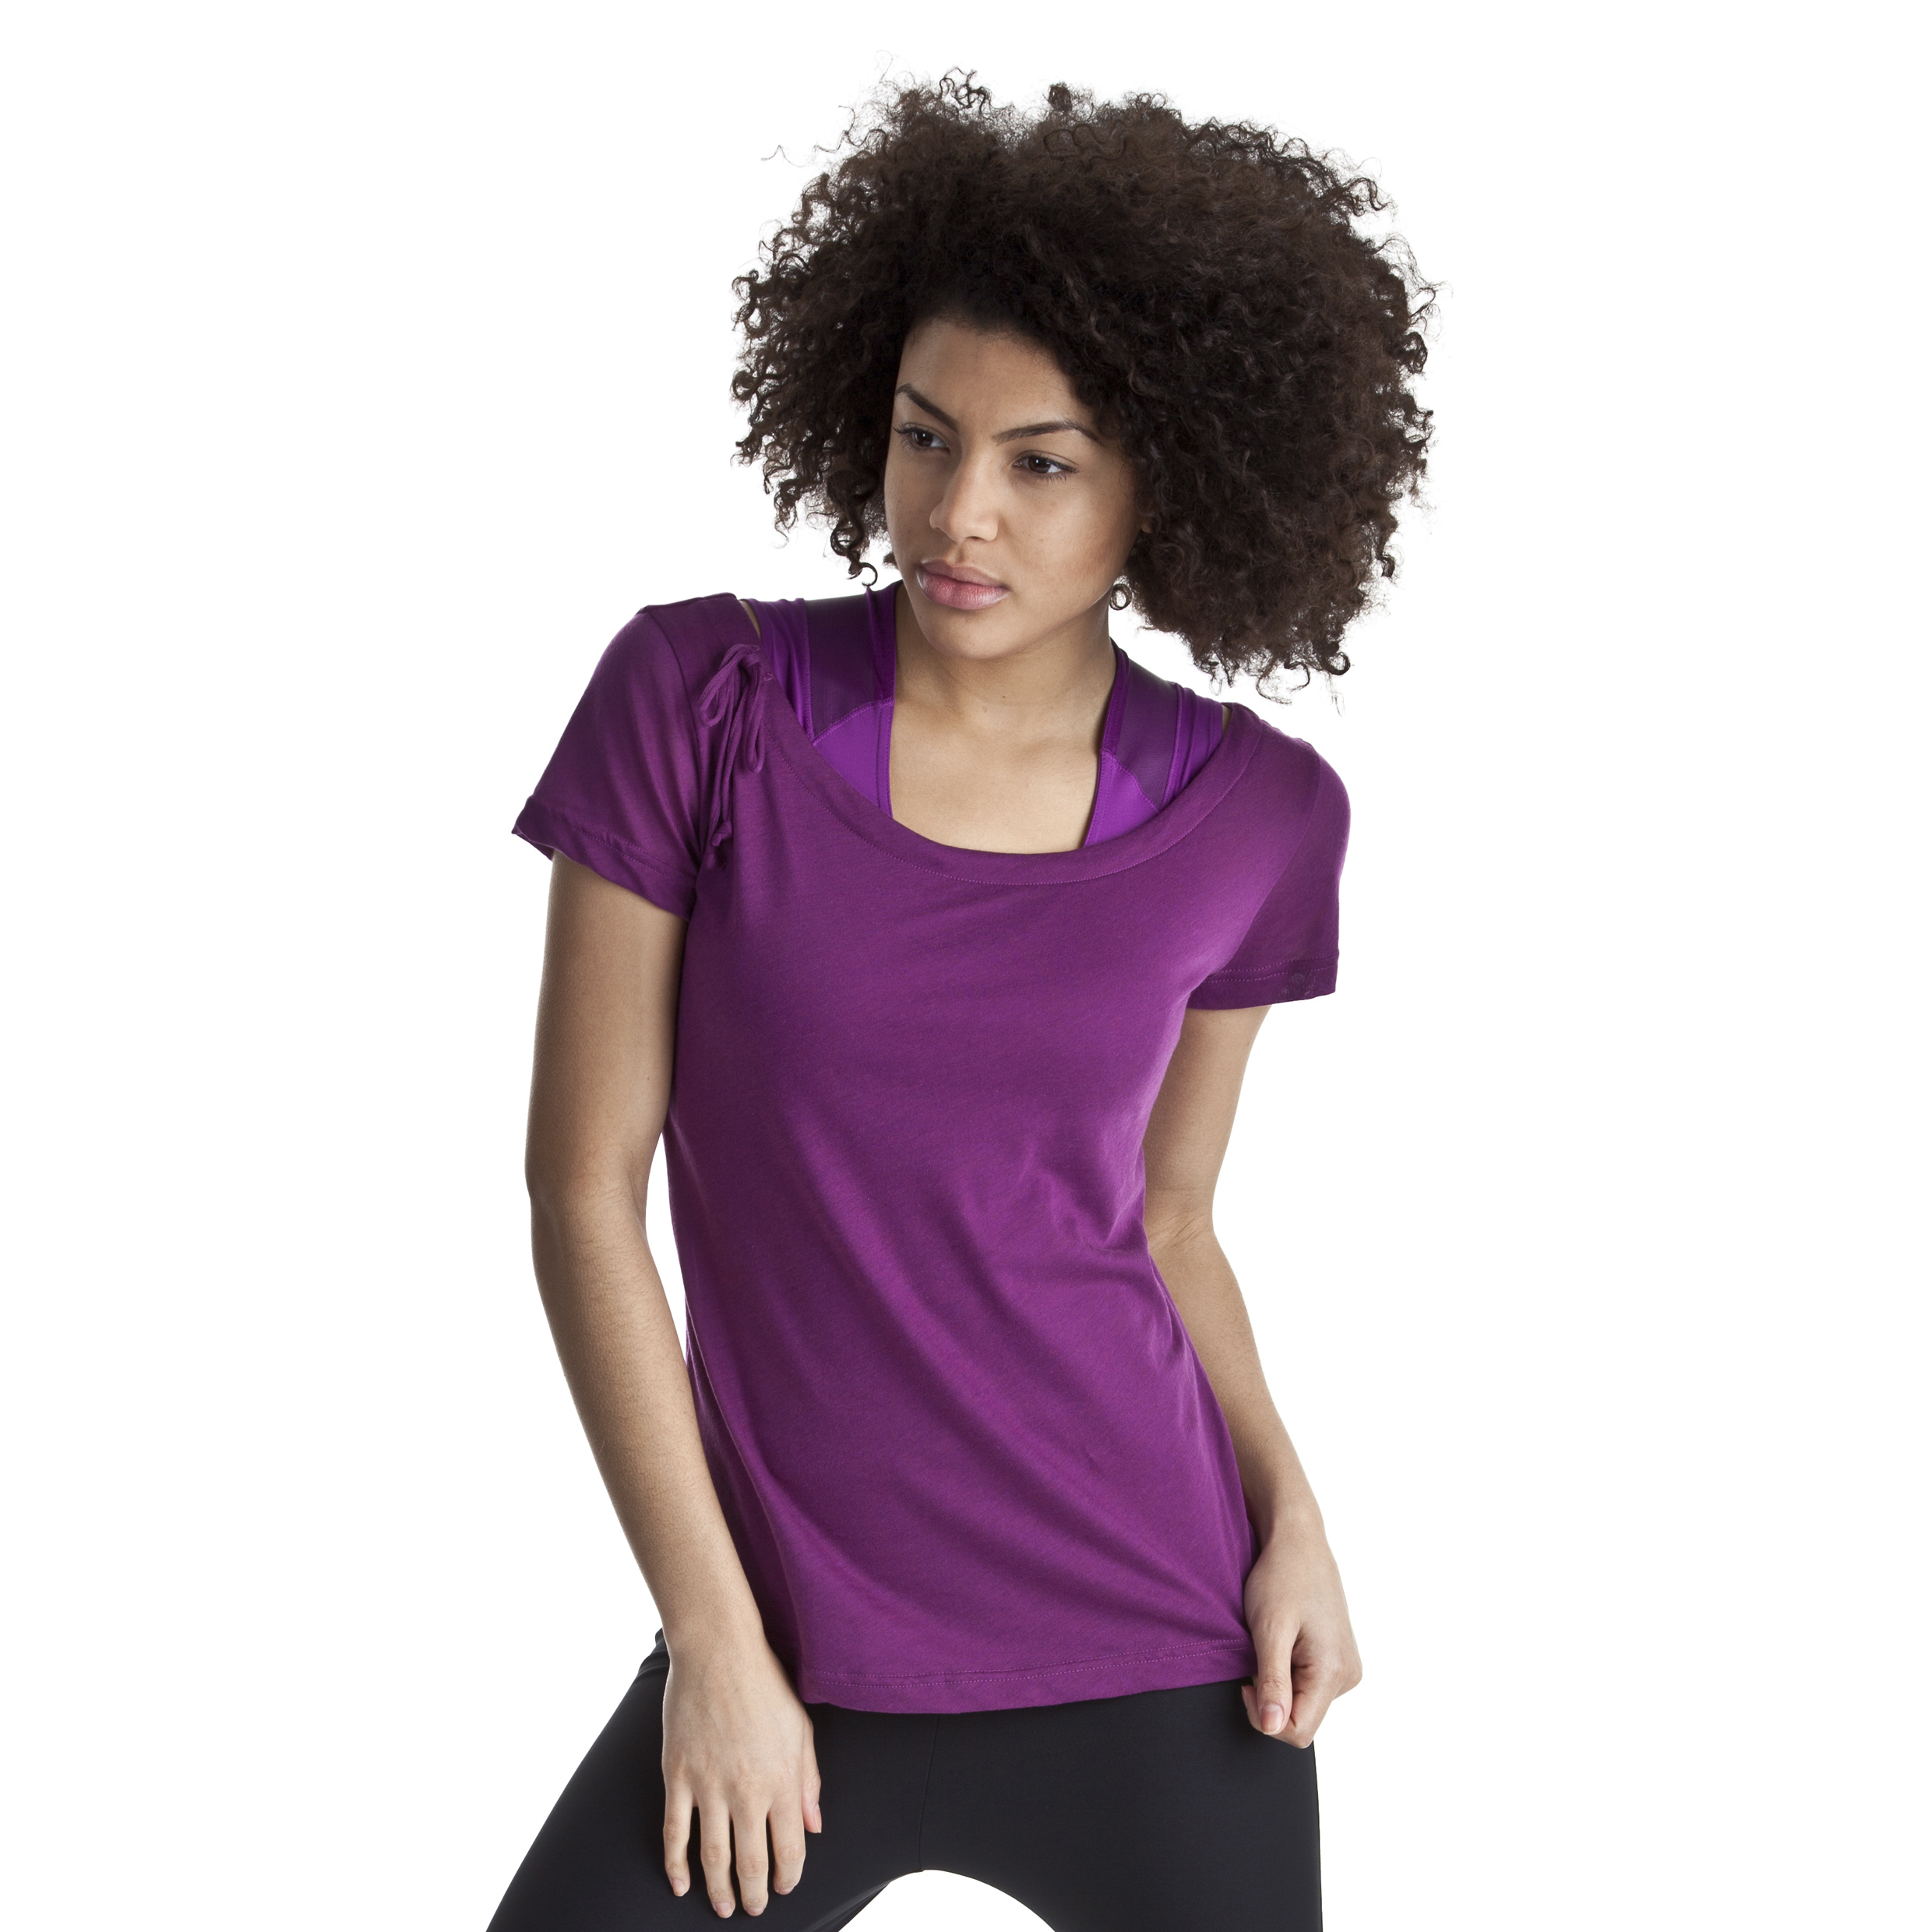 Reebok EasyTone Dbl Layer Short Sleev Top - Aubergine - Women